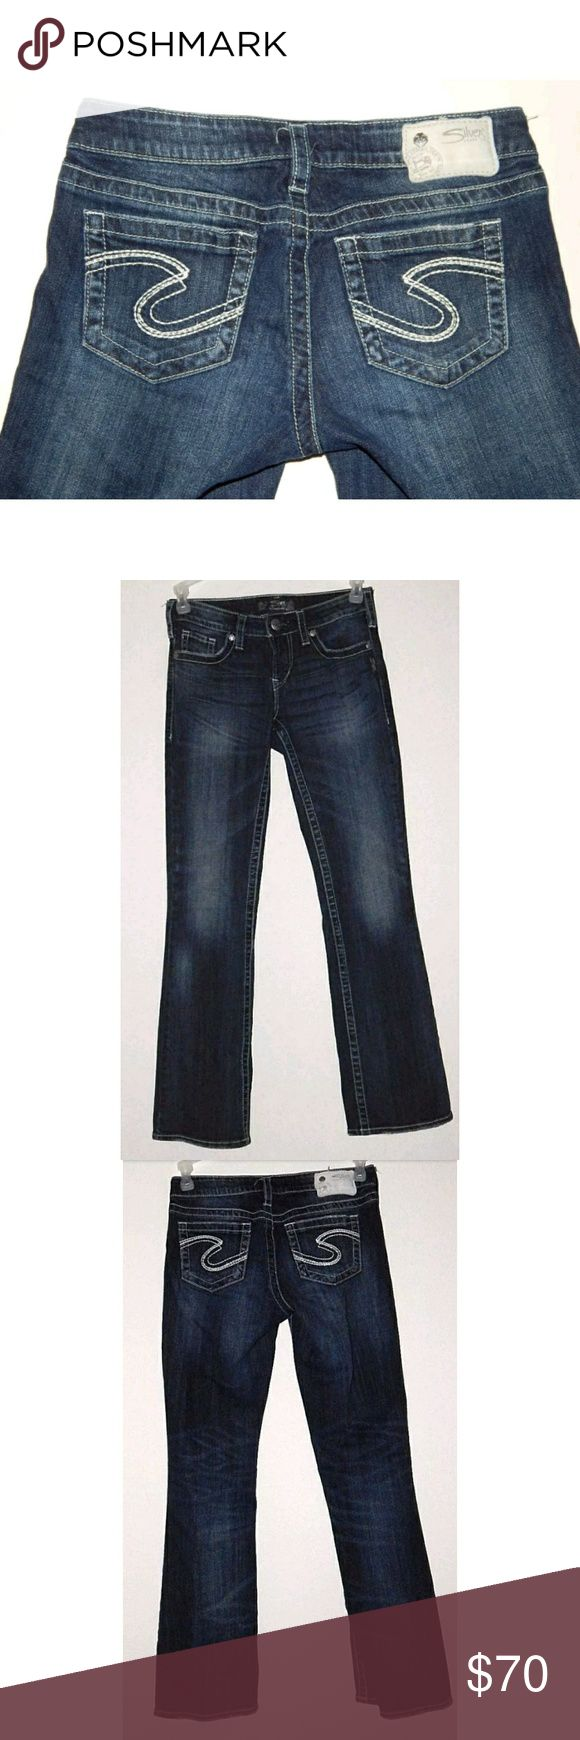 Silver Jeans Aiko Bootcut W26/ L31 Silver Jeans Aiko Bootcut W26/ L31  Excellent preowned condition!  Measurements:  Waist:14in Inseam:30.5in Outseam:38in Front Rise:8in Back Rise:13in Hips:16.5in  A005 Silver Jeans Jeans Boot Cut